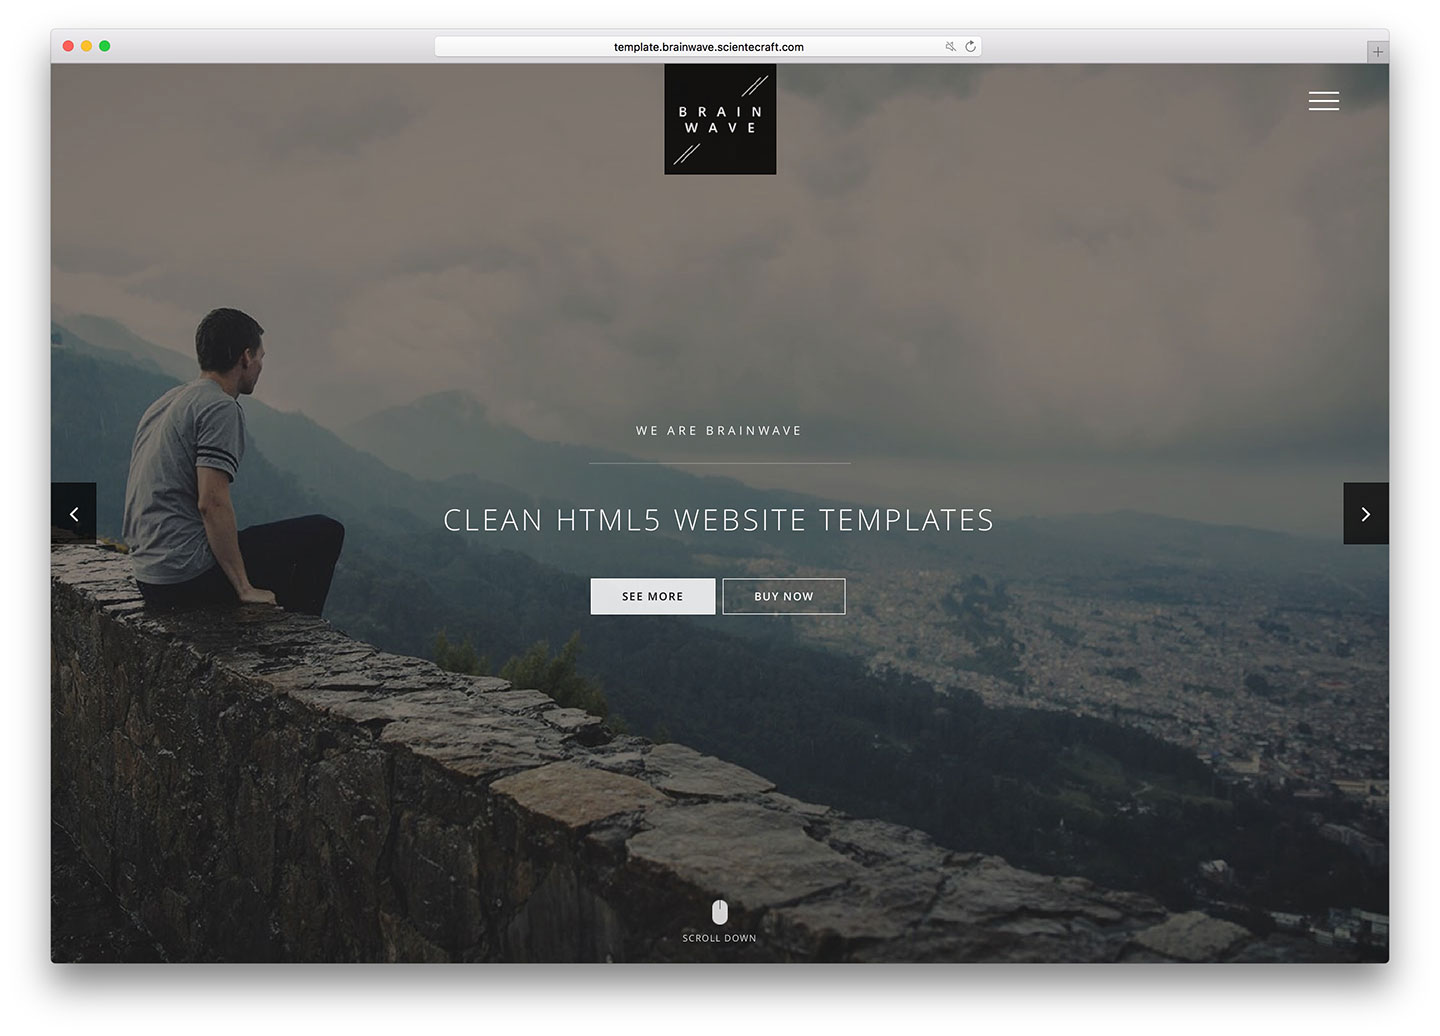 Top 18 Clean HTML5/CSS3 Website Templates 2017 - Colorlib